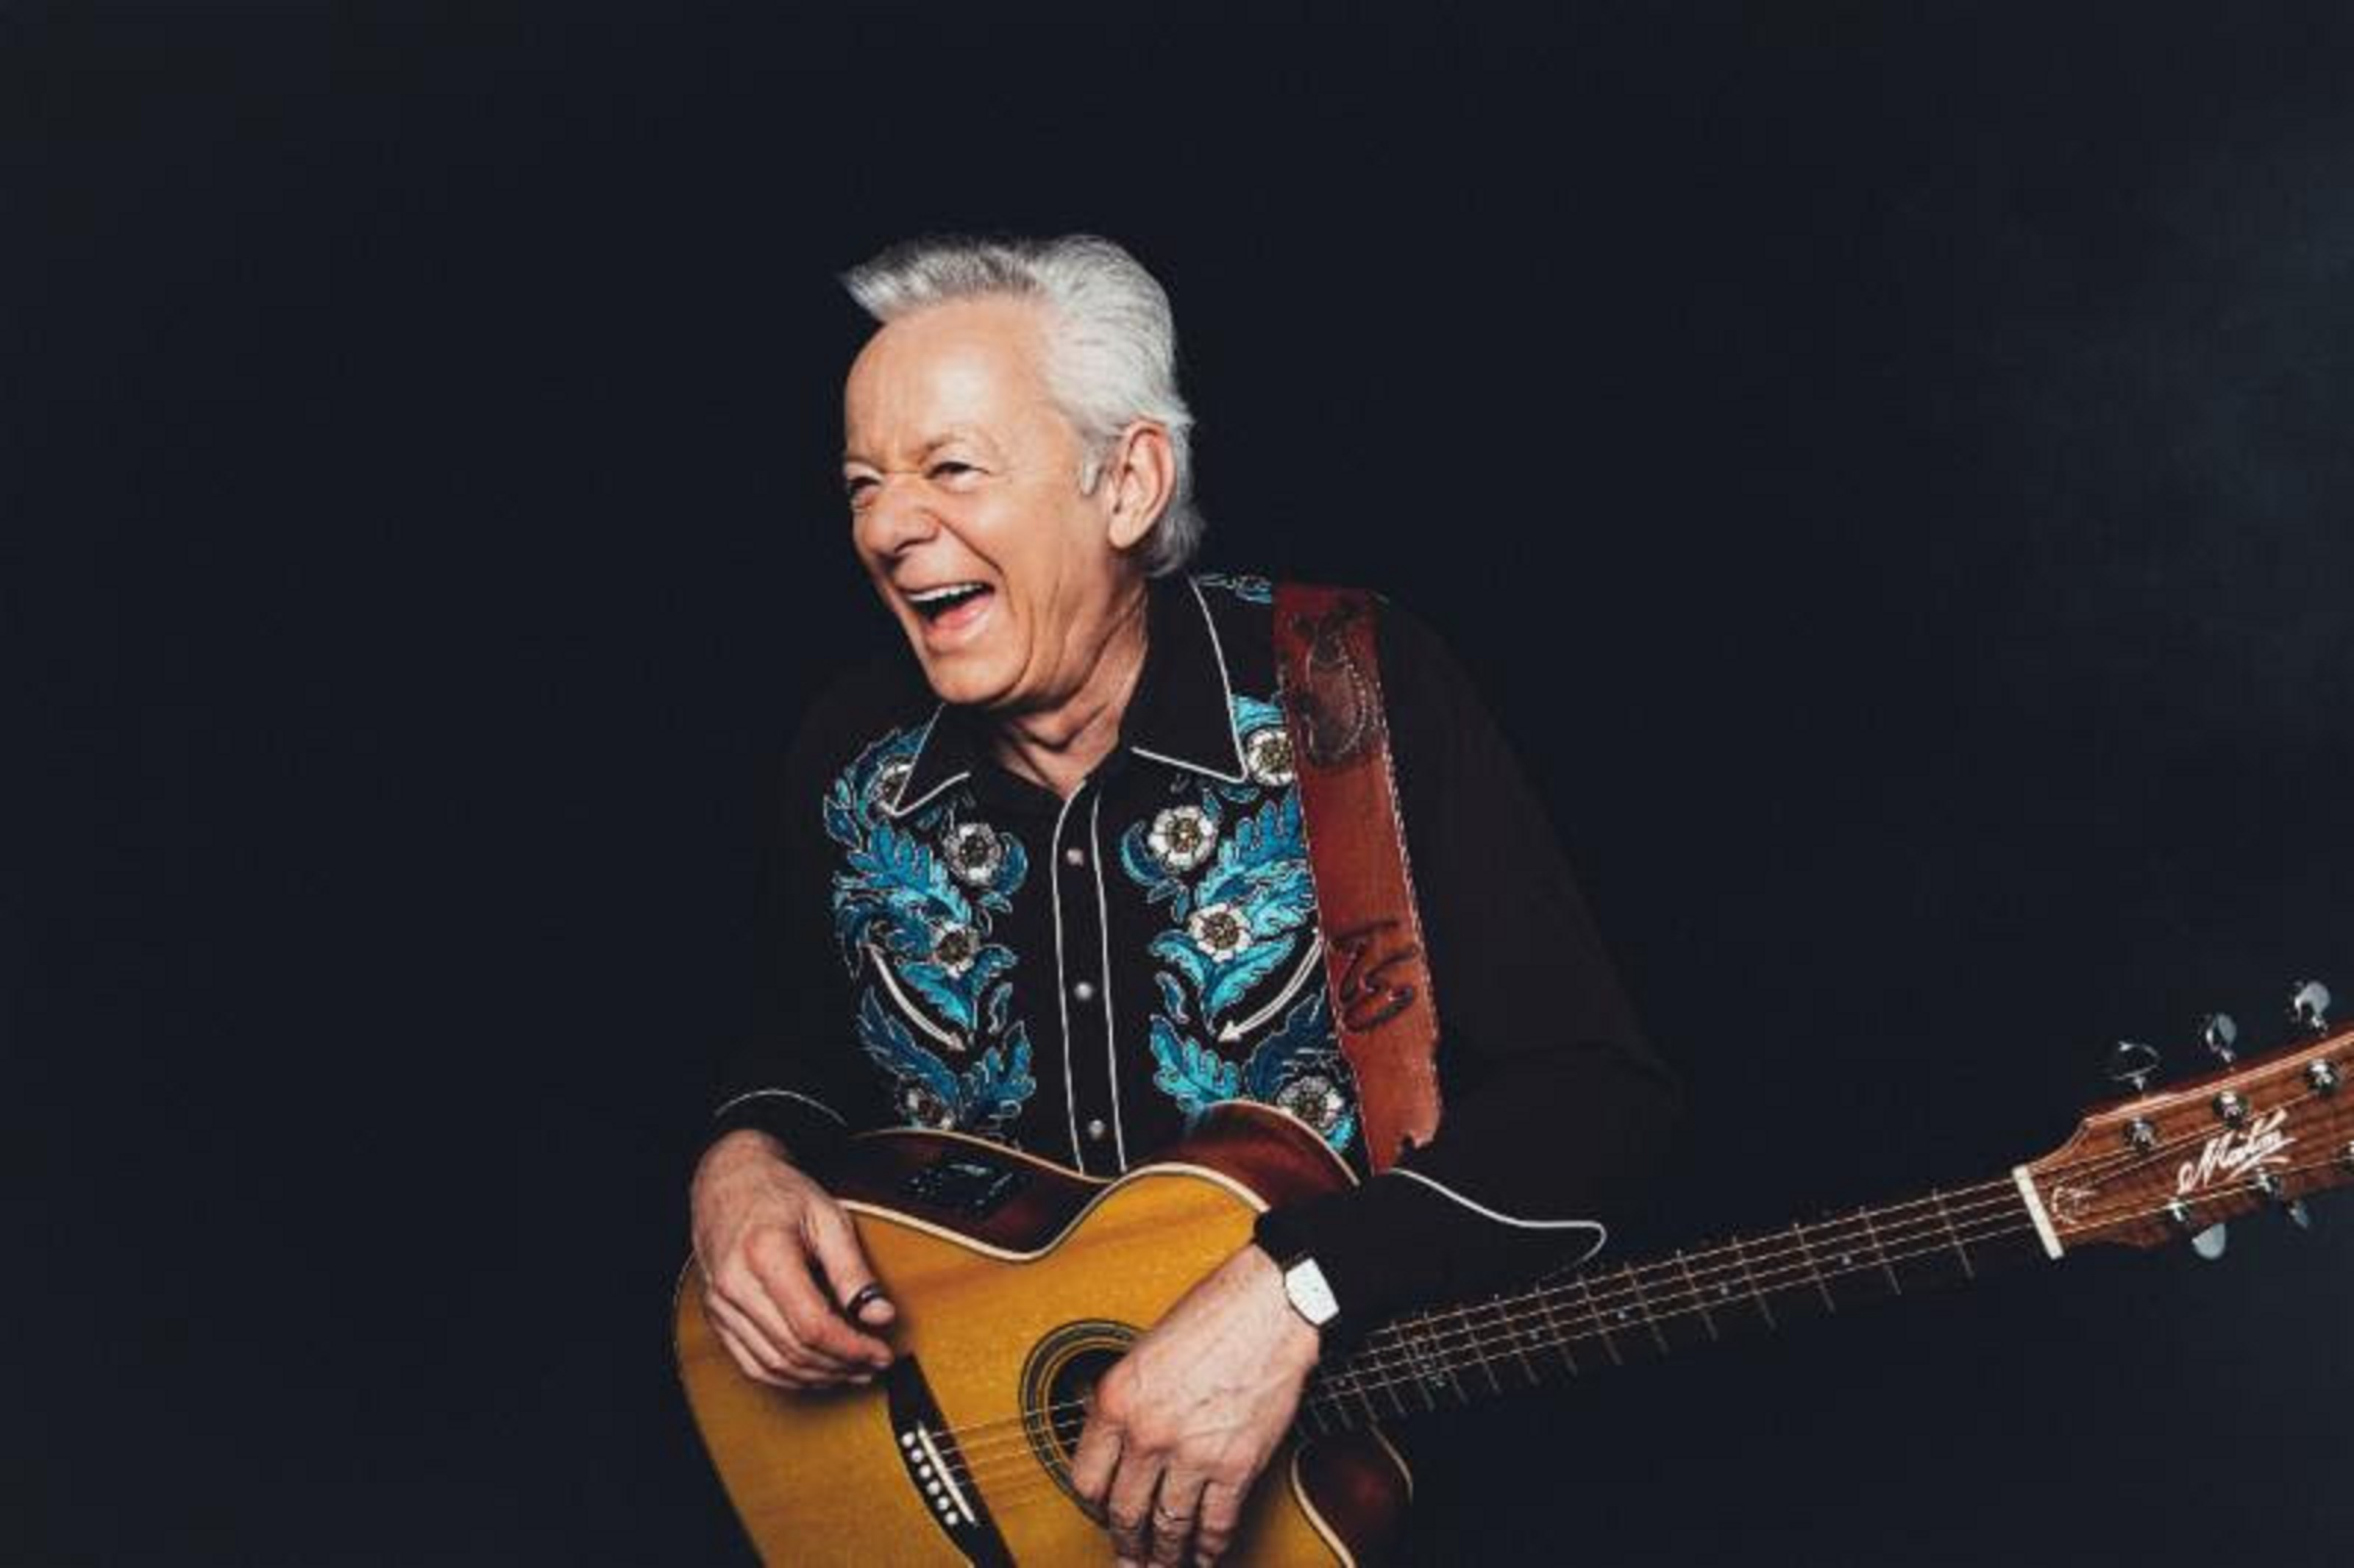 Tommy Emmanuel Announces More U.S. Tour Dates Starting July 15